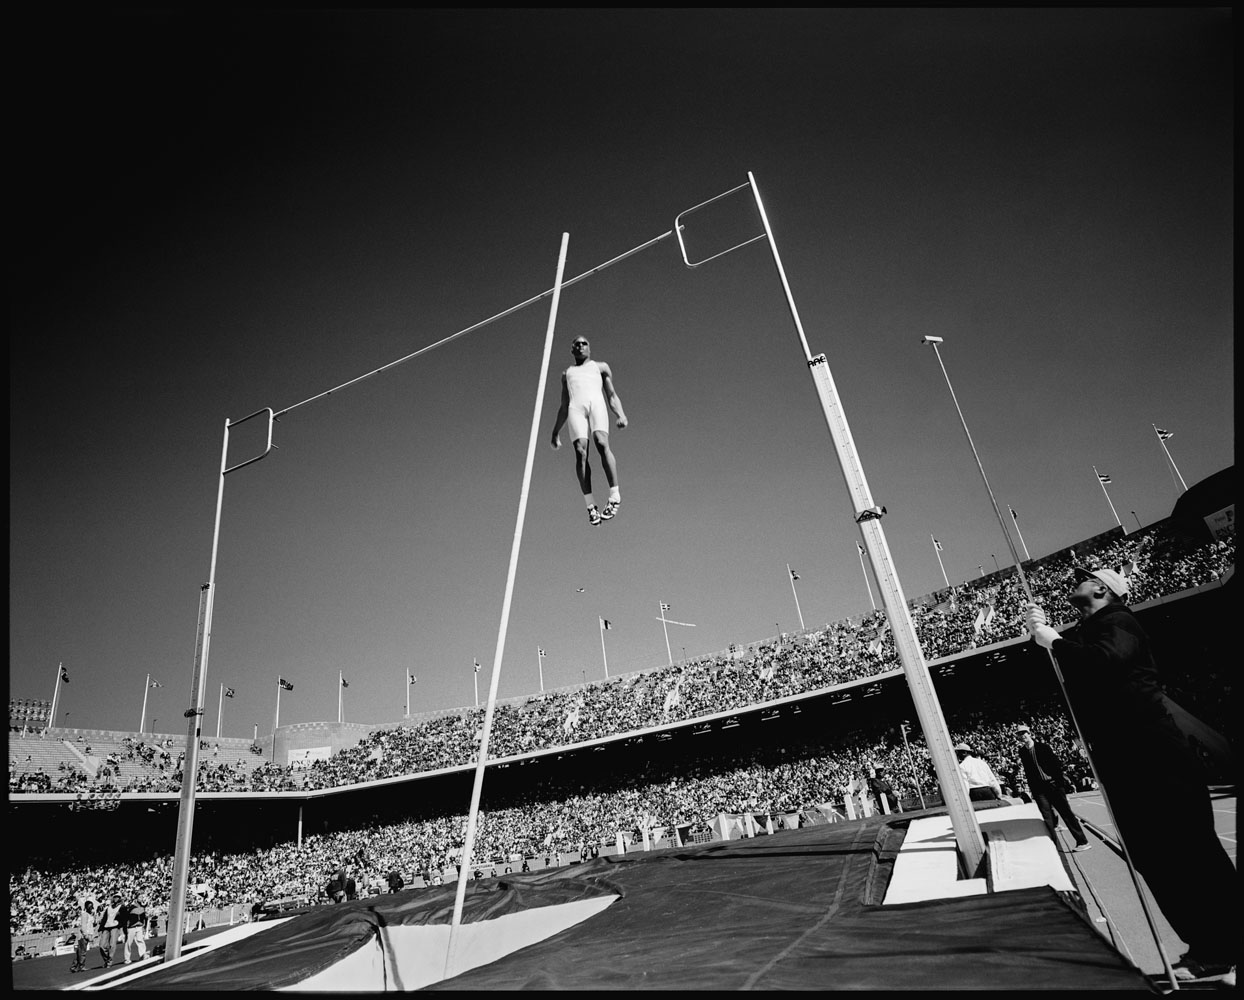 Pole vault, Trials, Pennsylvania, April 1996